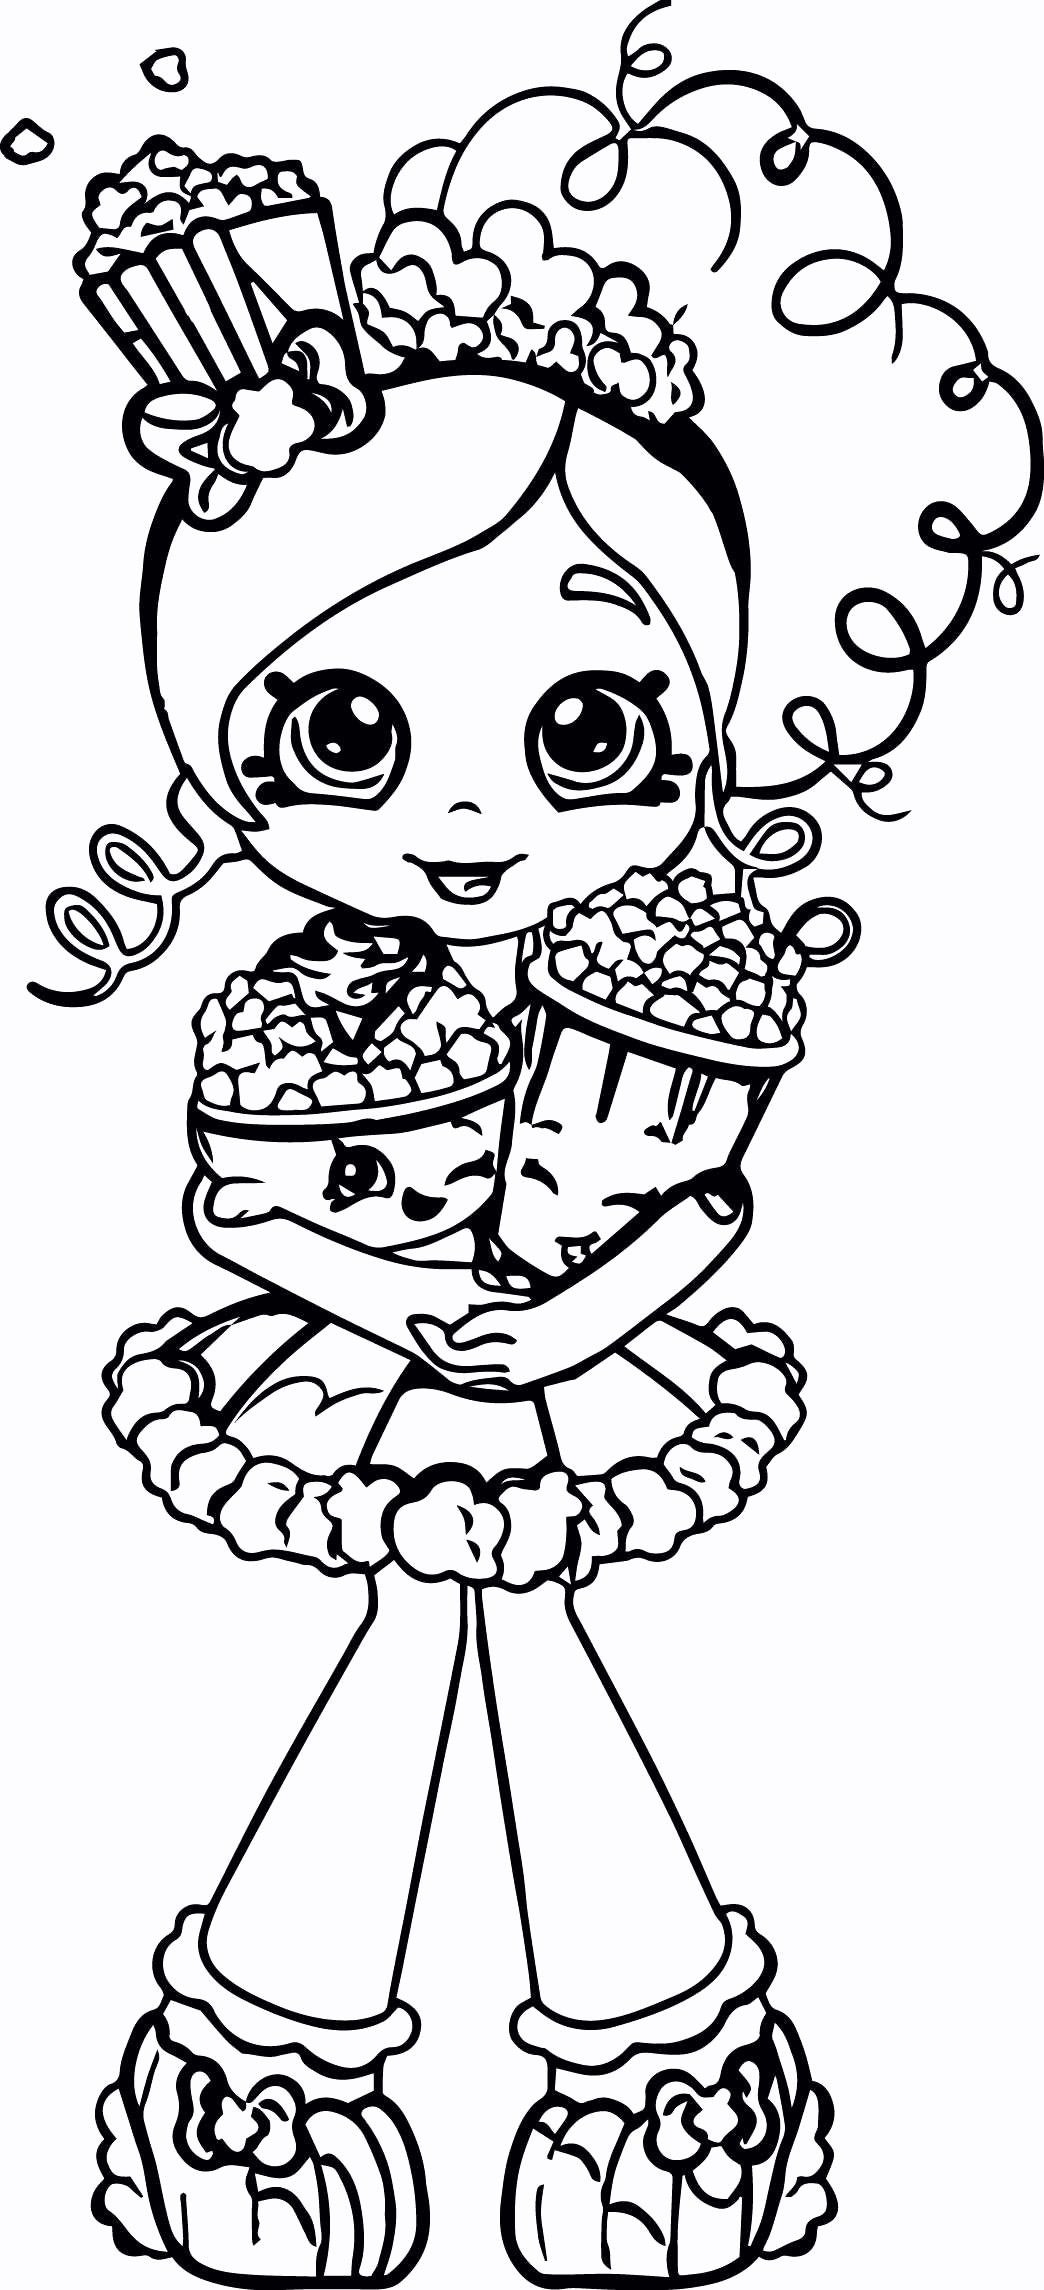 - Free Shopkins Coloring Pages Printable Shopkin Coloring Pages